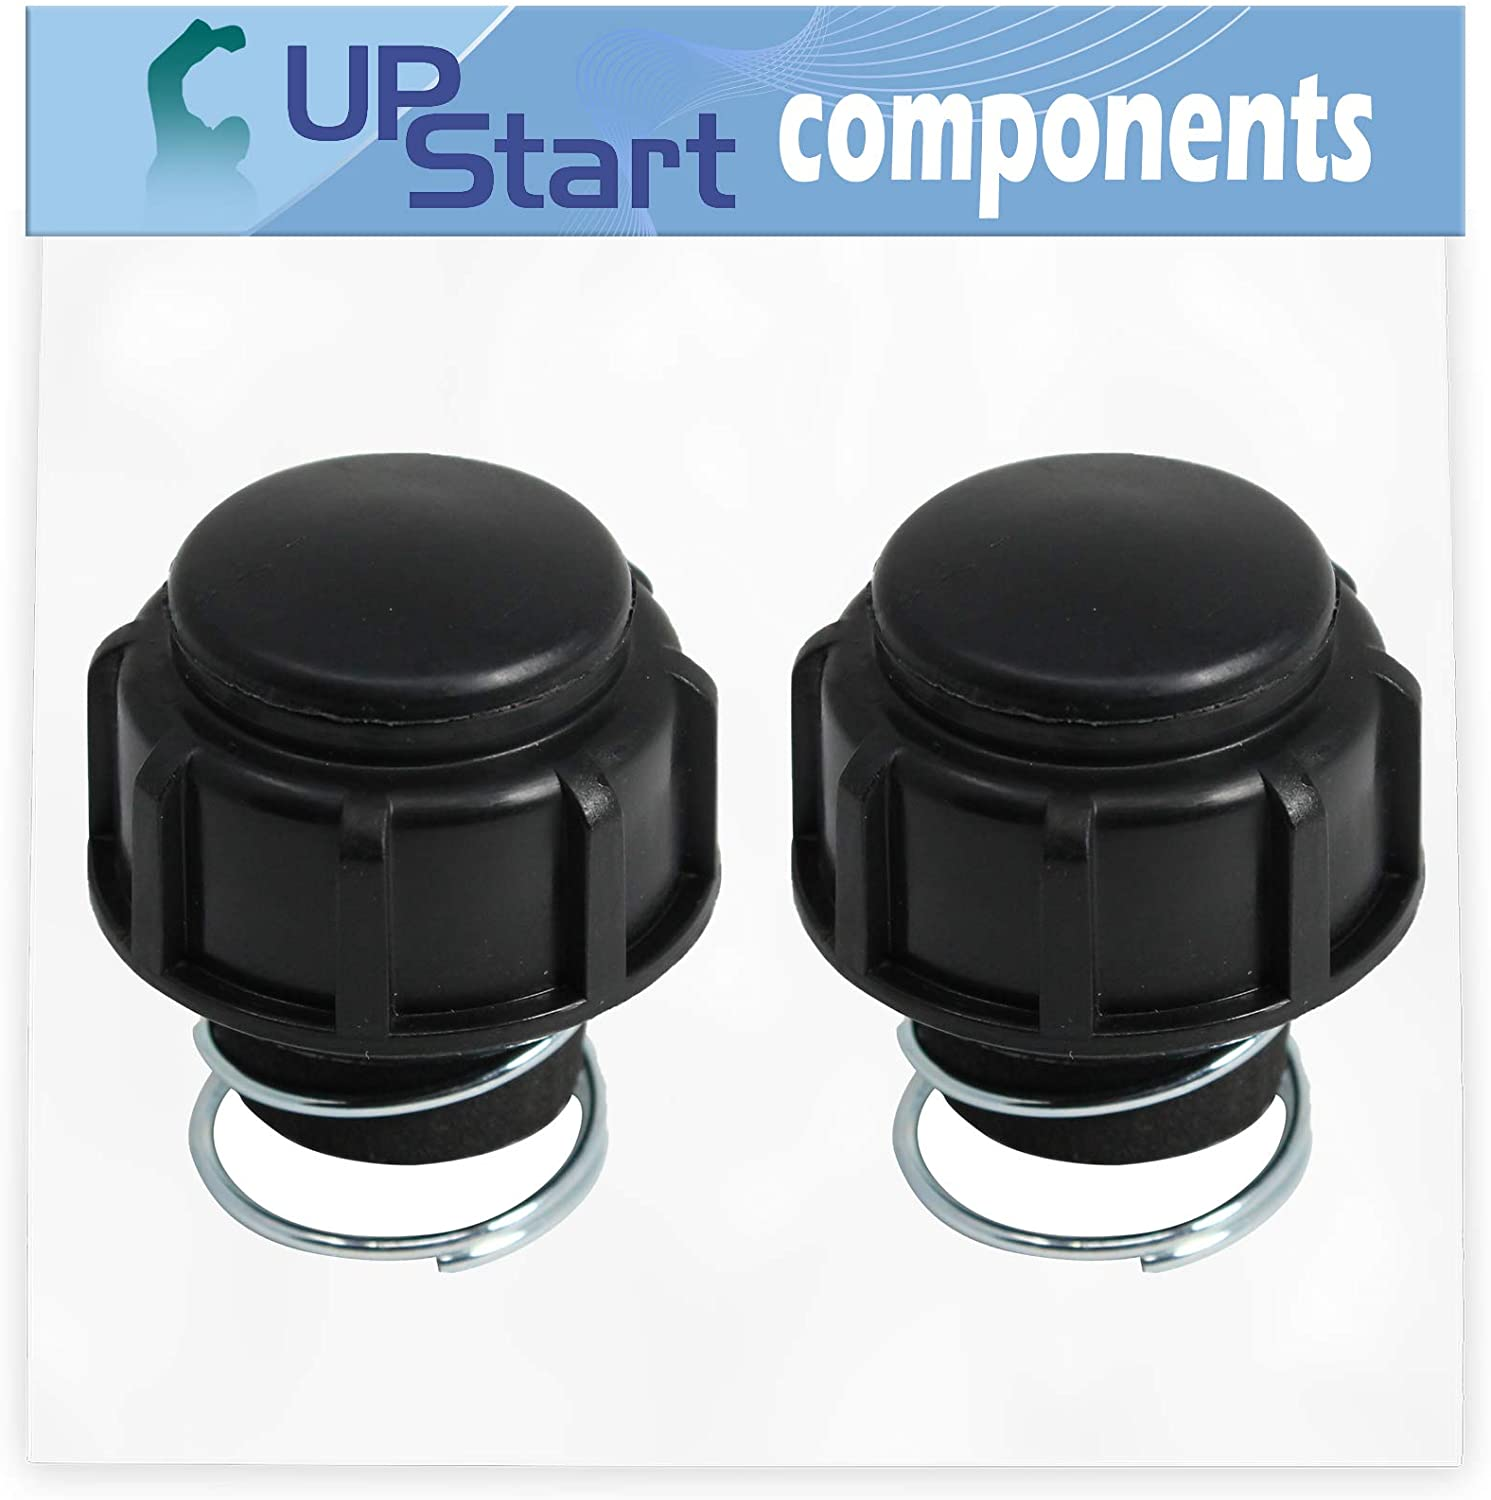 UpStart Components 2-Pack 791-181468B Bump Head Knob Assembly Replacement for Ryobi 705r (41BD705G034) Handheld Trimmer - Compatible with 181468 Bump Knob and Spring Assembly